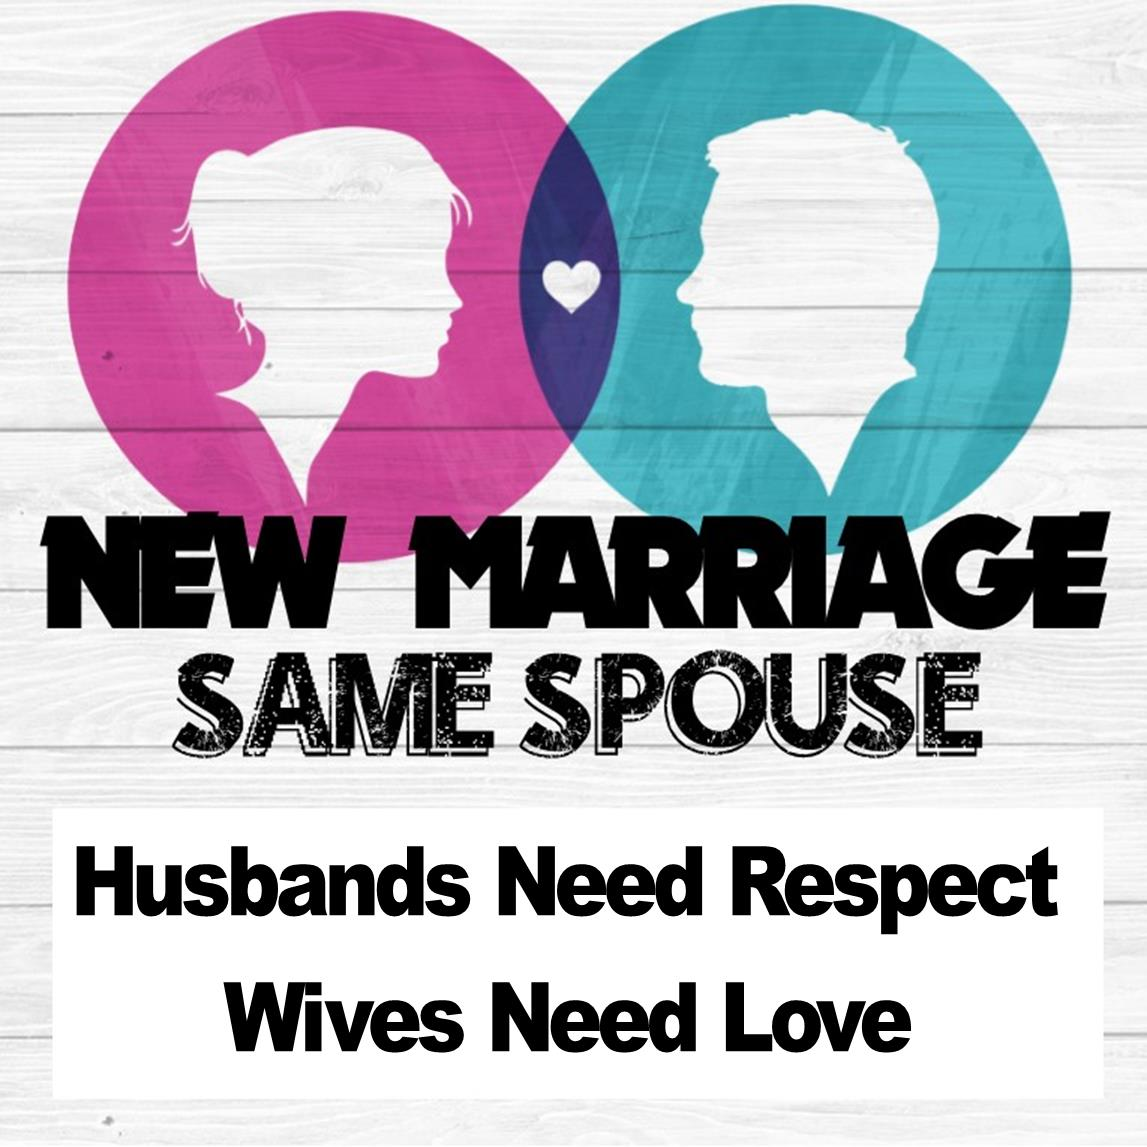 Husbands Need Respect. Wives Need Love.